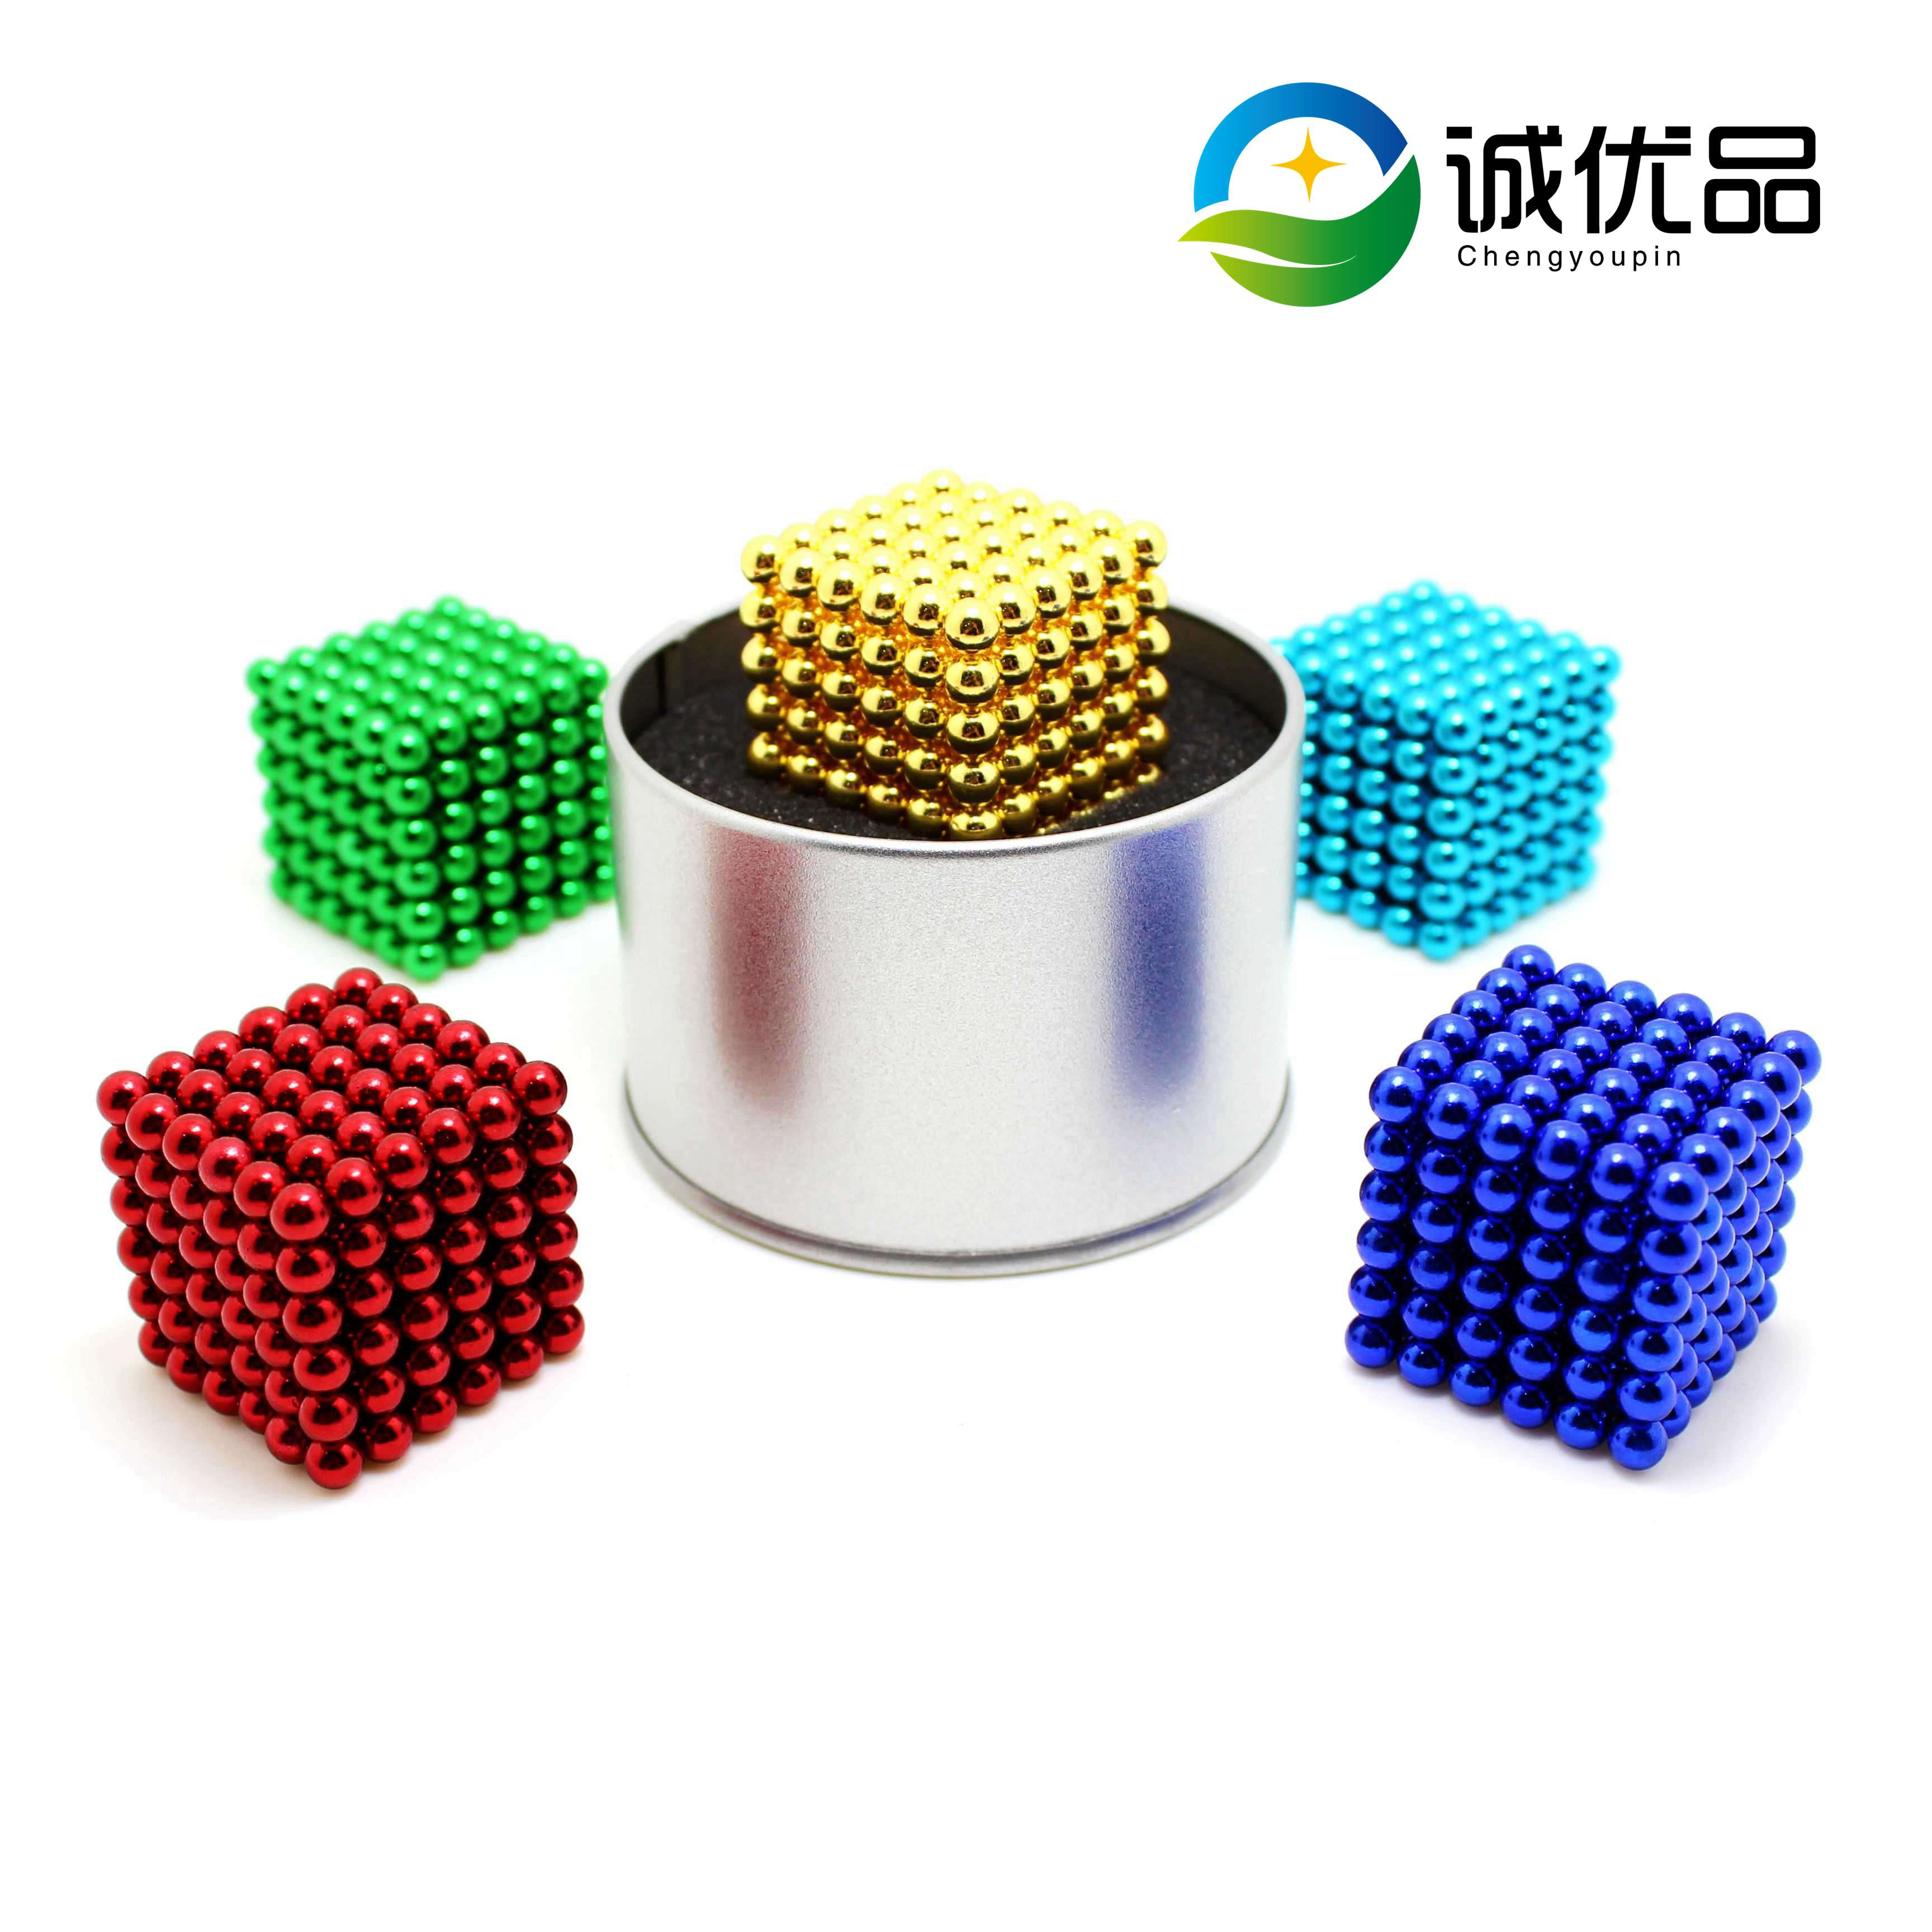 Big Pack 512PCS Alpha Magic Balls Rainbow This Magnetic Building Set Is Great for Educational Development and Stress Relief for Teenagers /& Adults With case 5MM